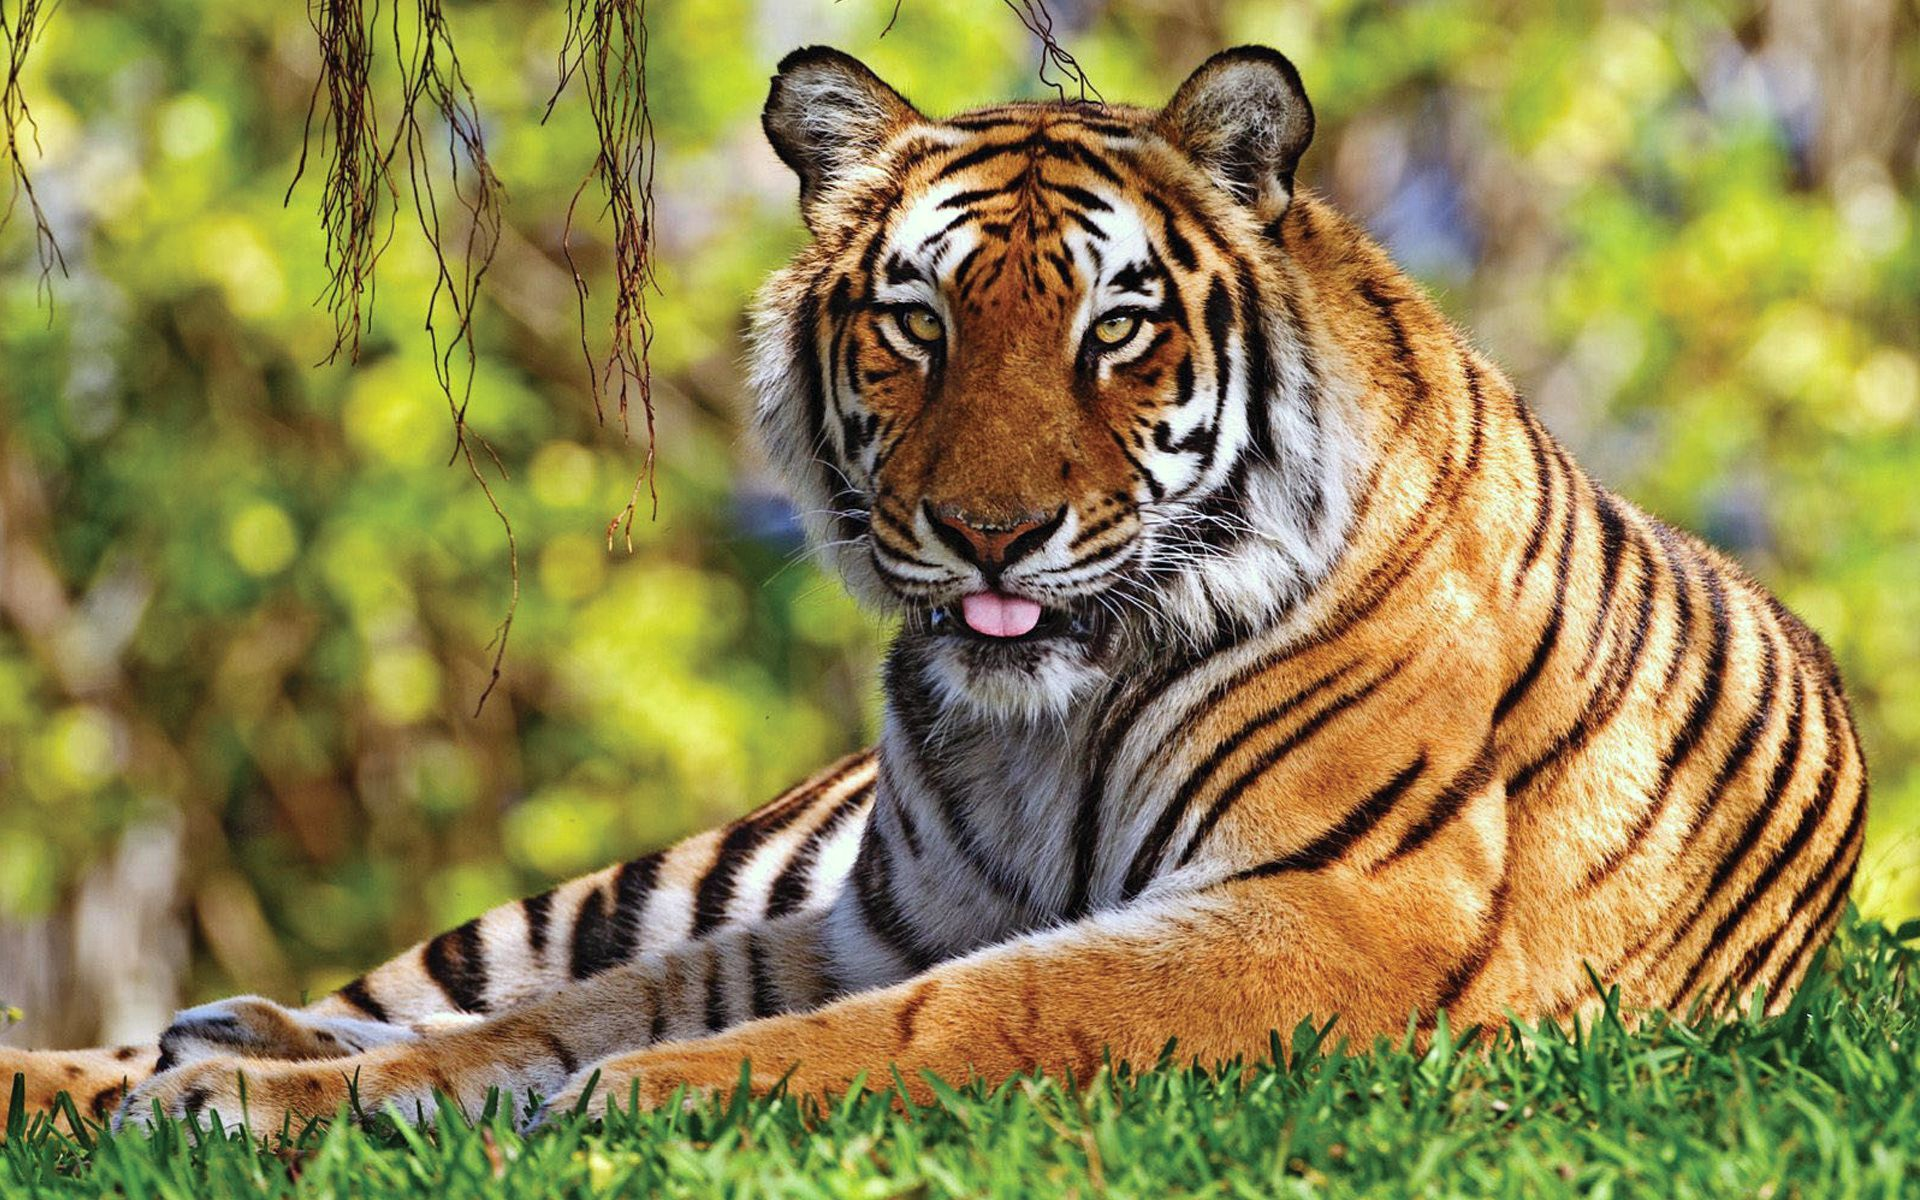 139683 download wallpaper Animals, Tiger, Grass, To Lie Down, Lie, Relaxation, Rest, Predator screensavers and pictures for free